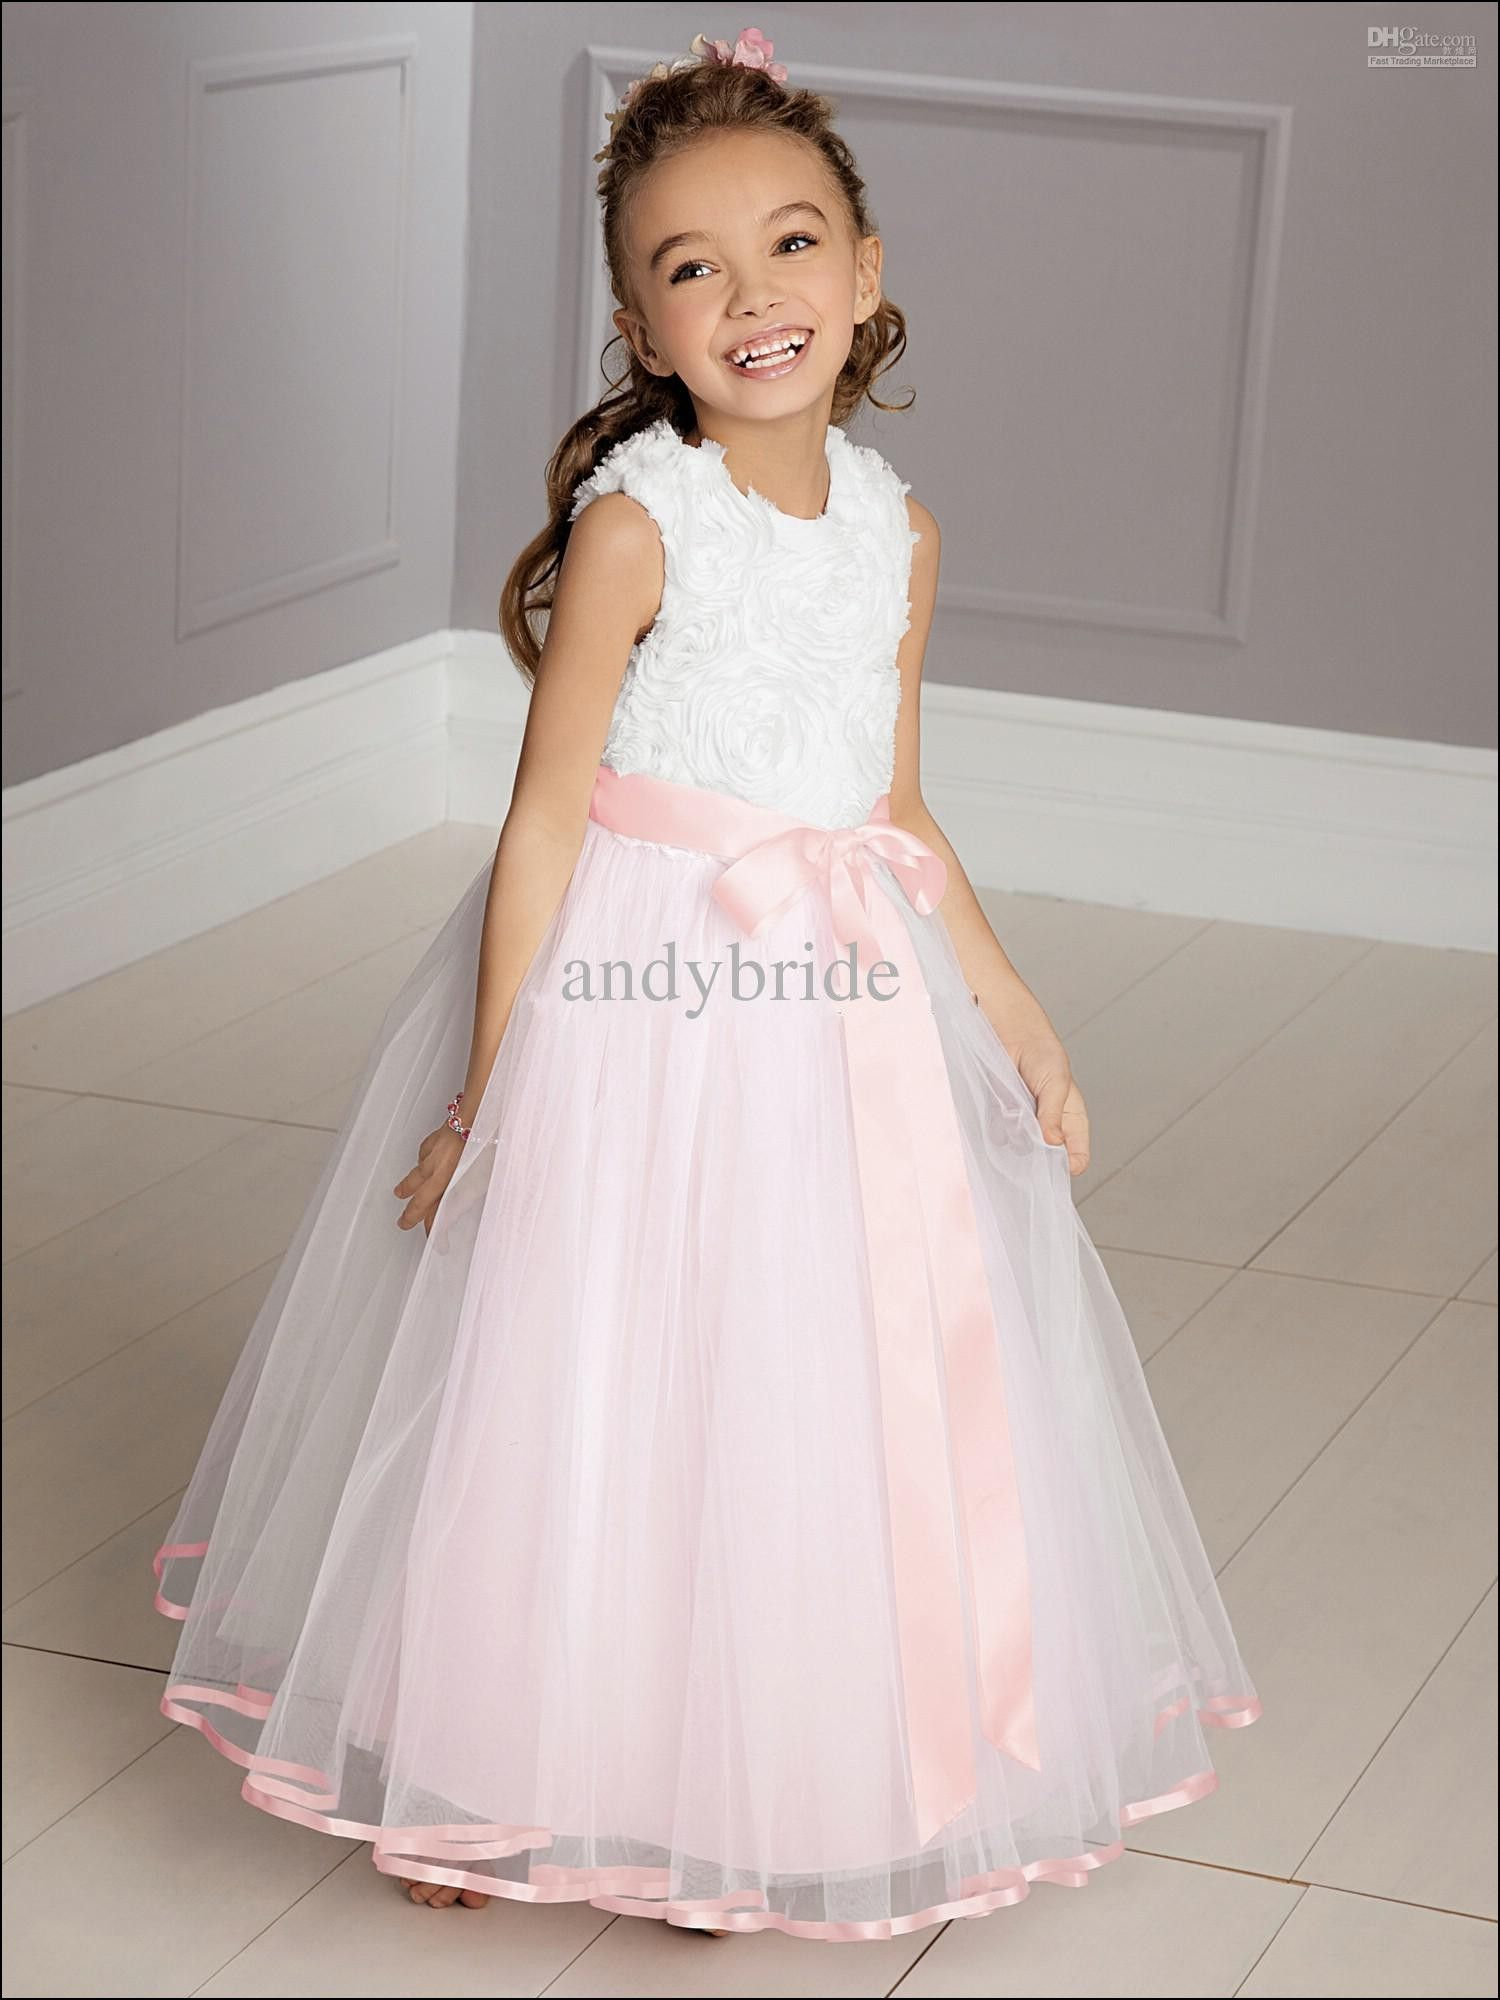 Young girls bridesmaid dresses dresses and gowns ideas young girls bridesmaid dresses ombrellifo Images